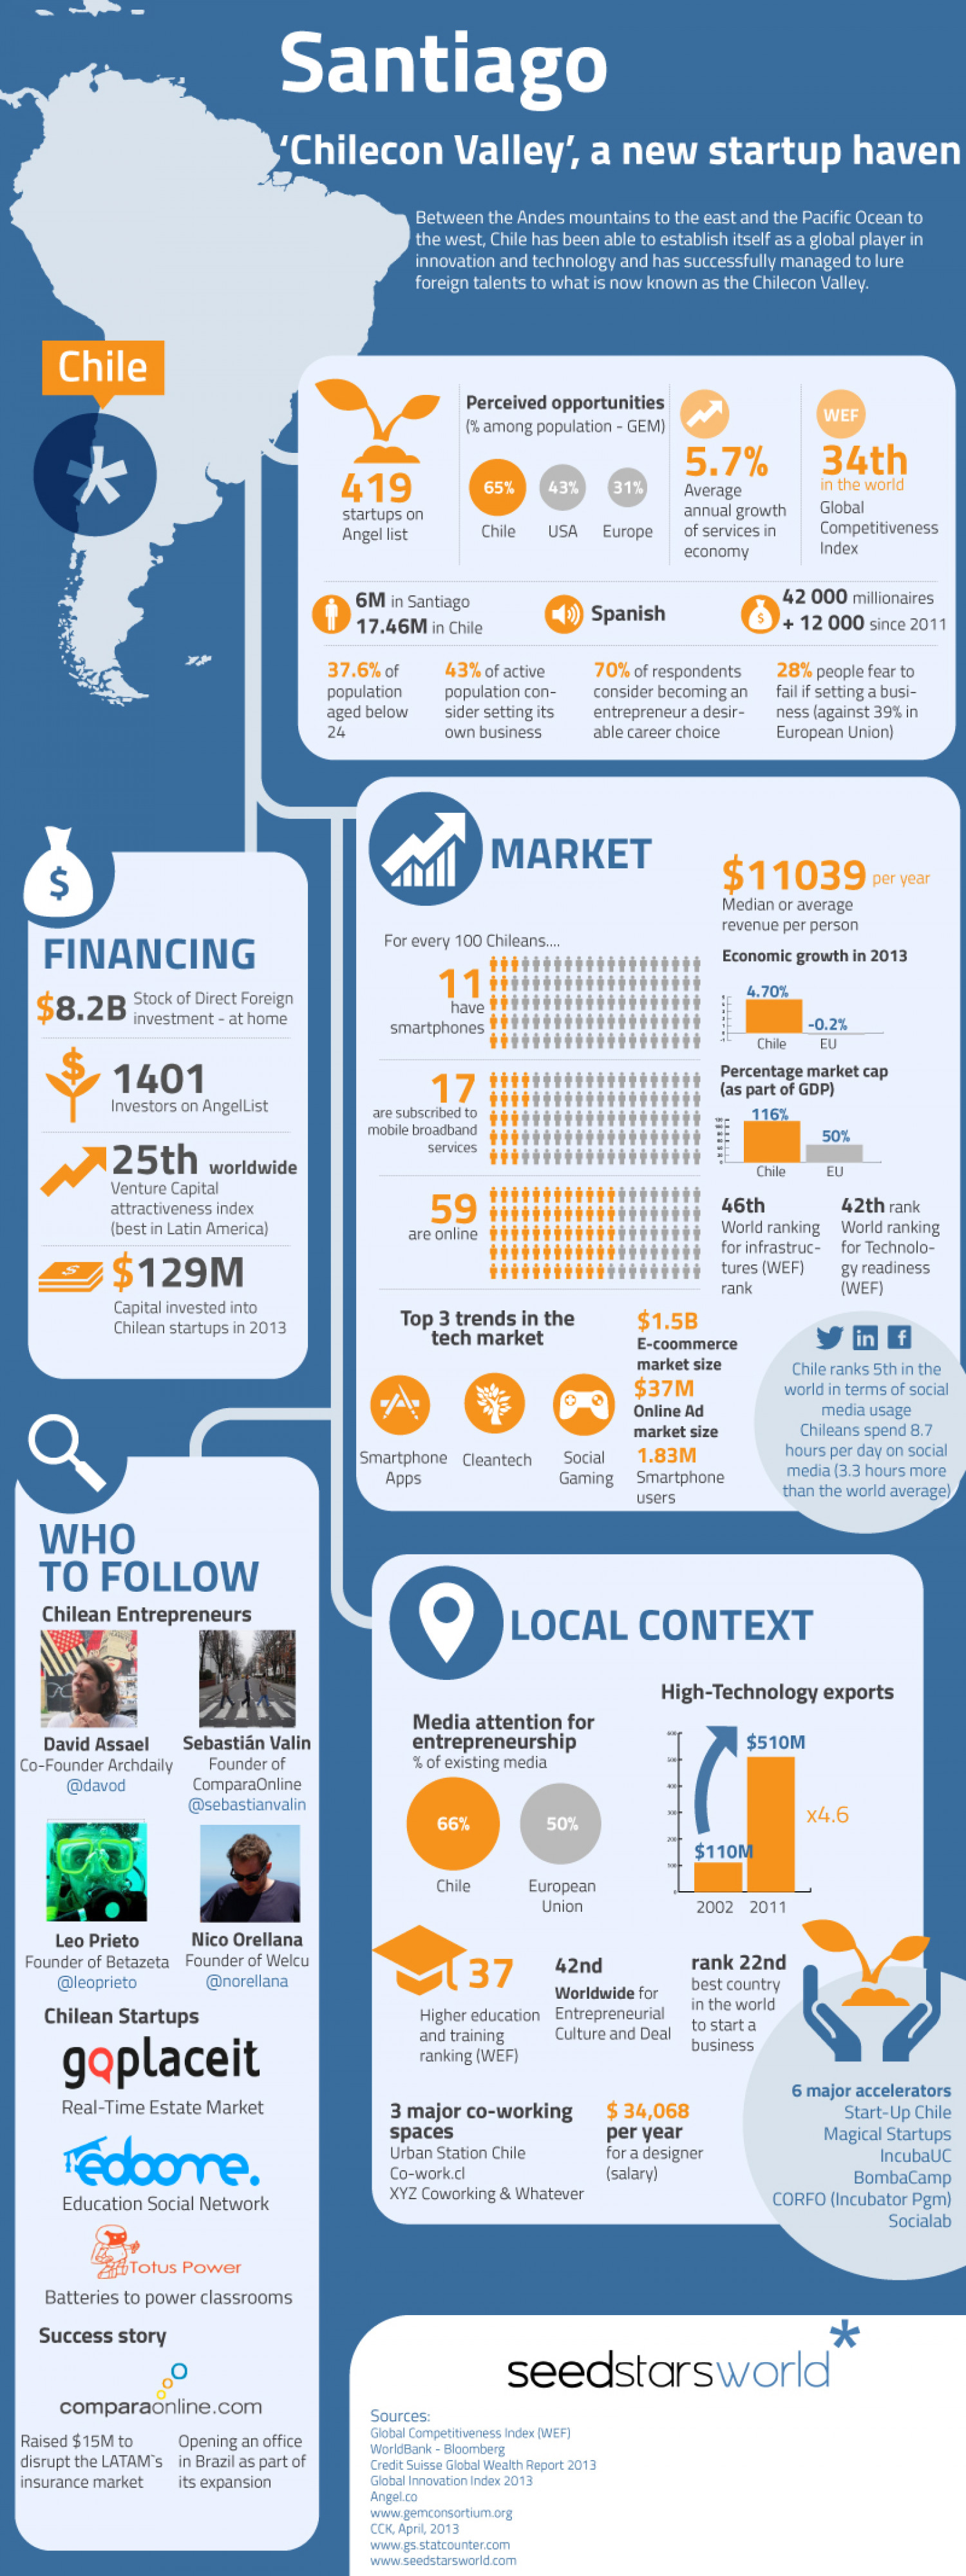 Santiago – 'Chilecon Valley', a new Startup Haven Infographic